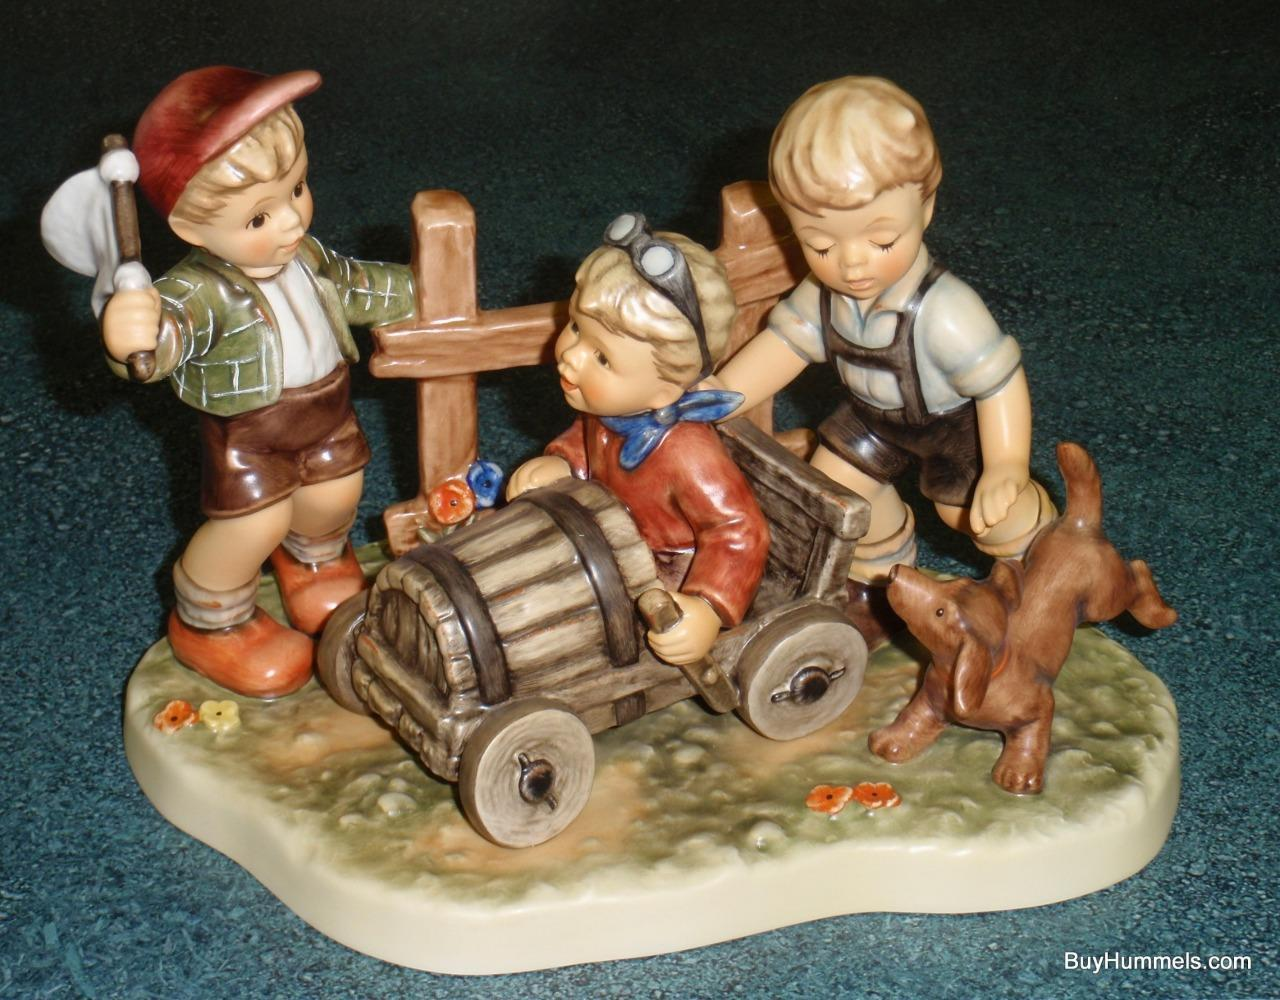 Primary image for Soap Box Derby Goebel Hummel Figurine #2121 TMK8 Moments In Time Collection RARE